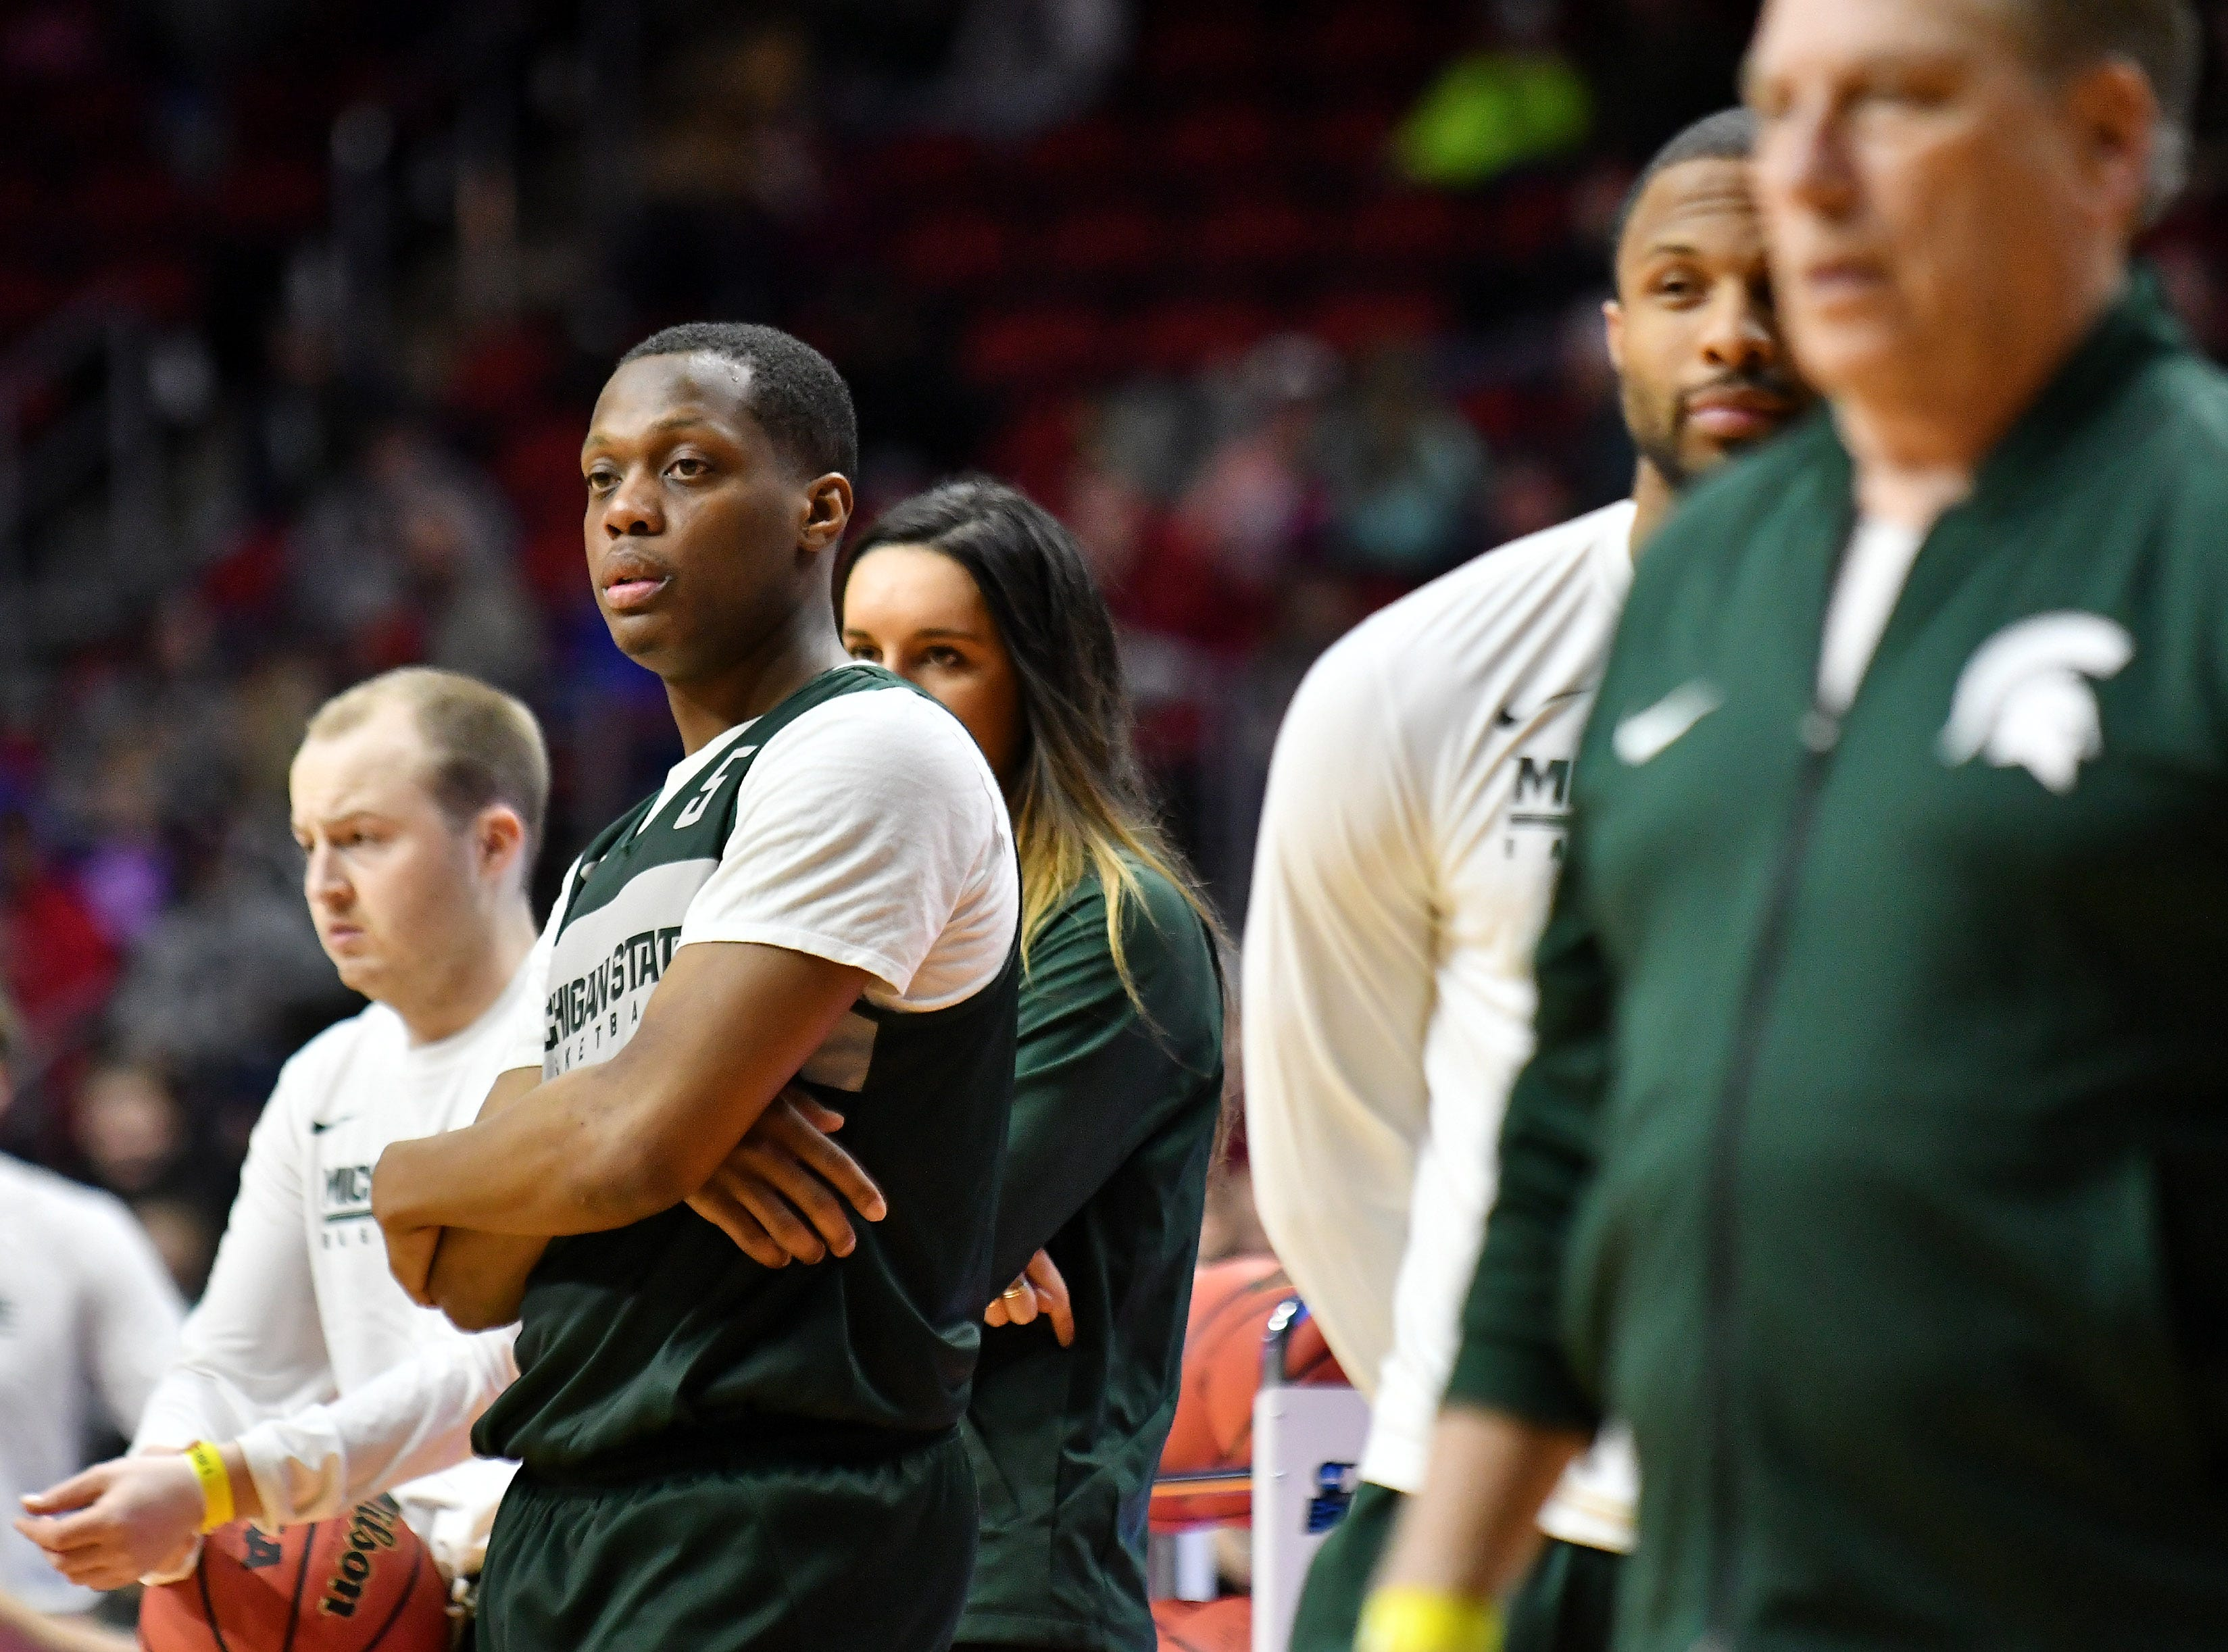 Michigan State guard Cassius Winston watches teammates during drills.